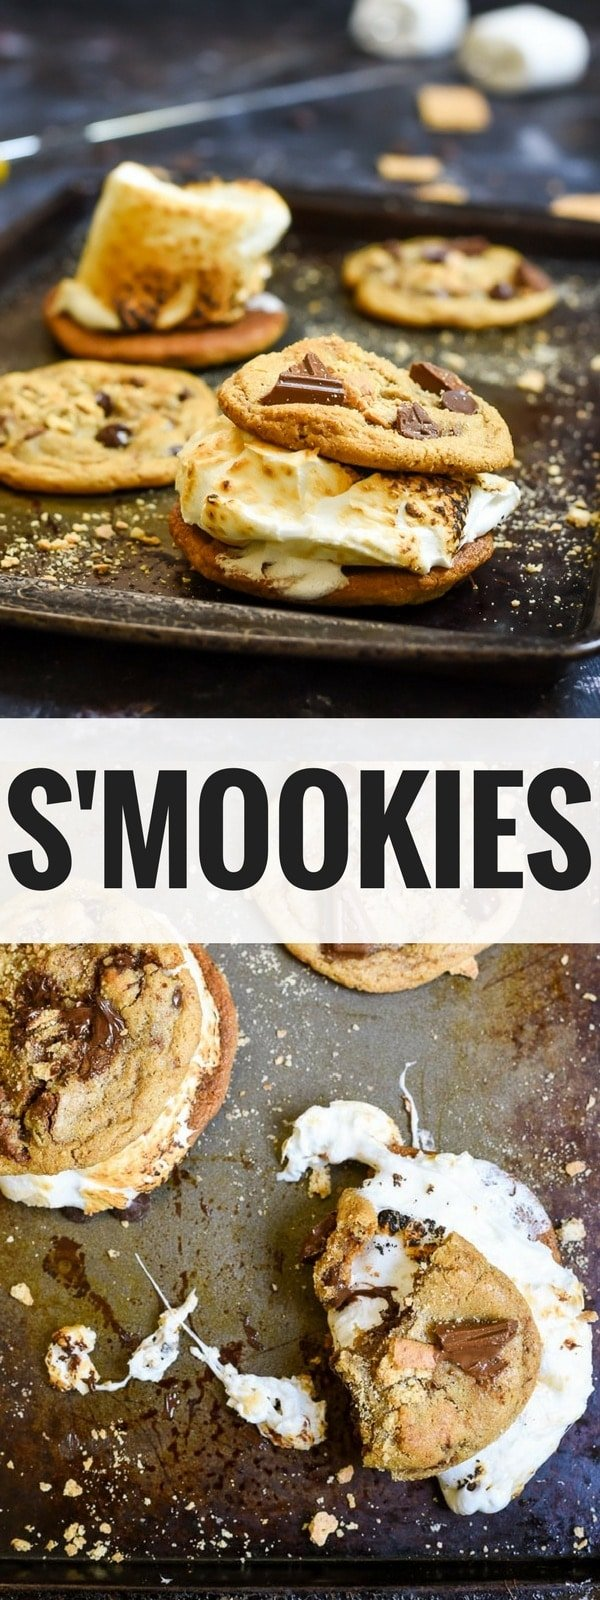 These Graham Cracker Chocolate Chip Cookies (or S'mookies!) are my favorite summer dessert. Chewy, melty, gooey goodness with a toasted marshmallow nestled inside. It's perfect for campfire evenings!